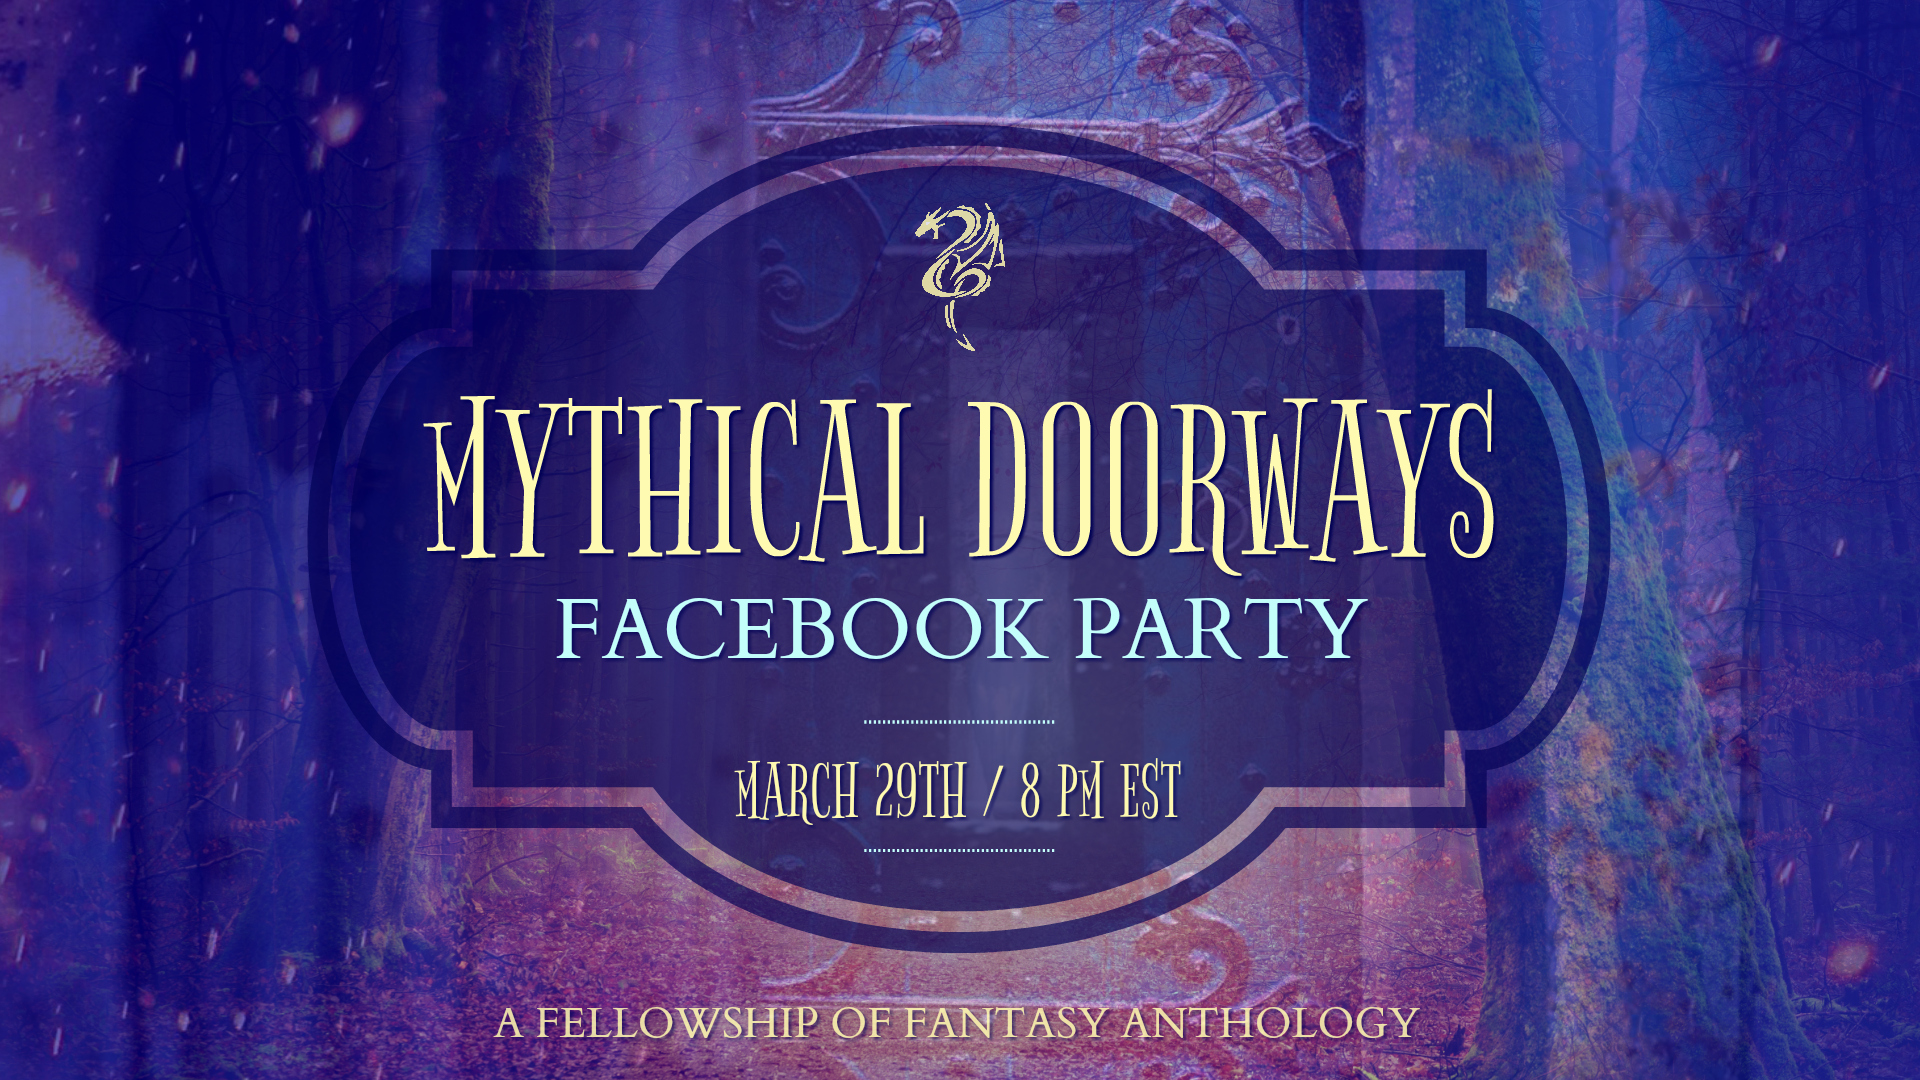 Mythical Doorways FB Party Banner.jpg